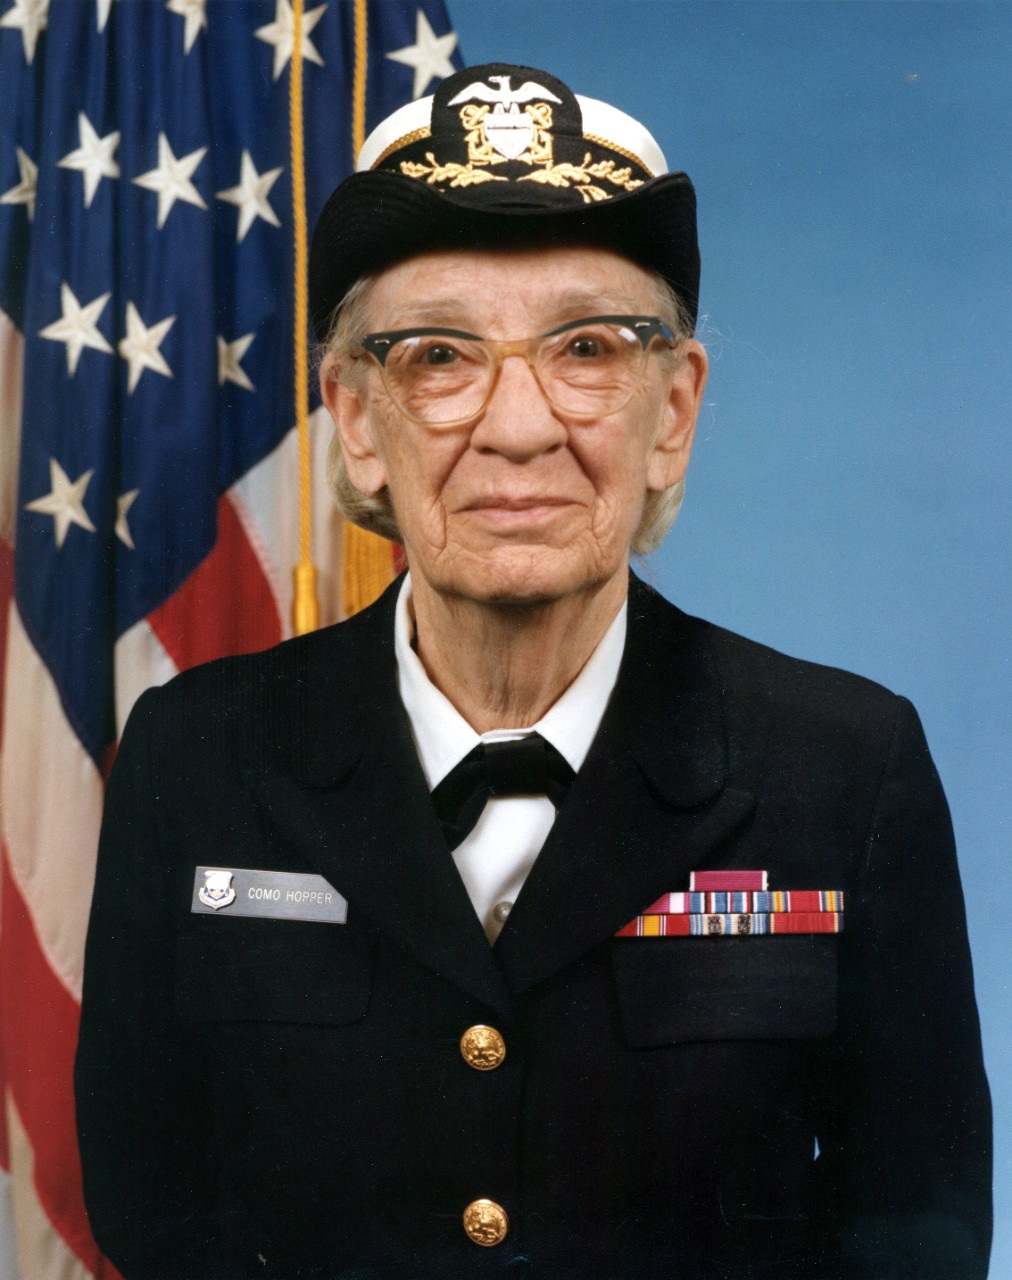 Photo #: NH 96919-KN Official portrait photograph of Commodore Grace M. Hopper, USNR. Original photo number DN-SC-84-05970.